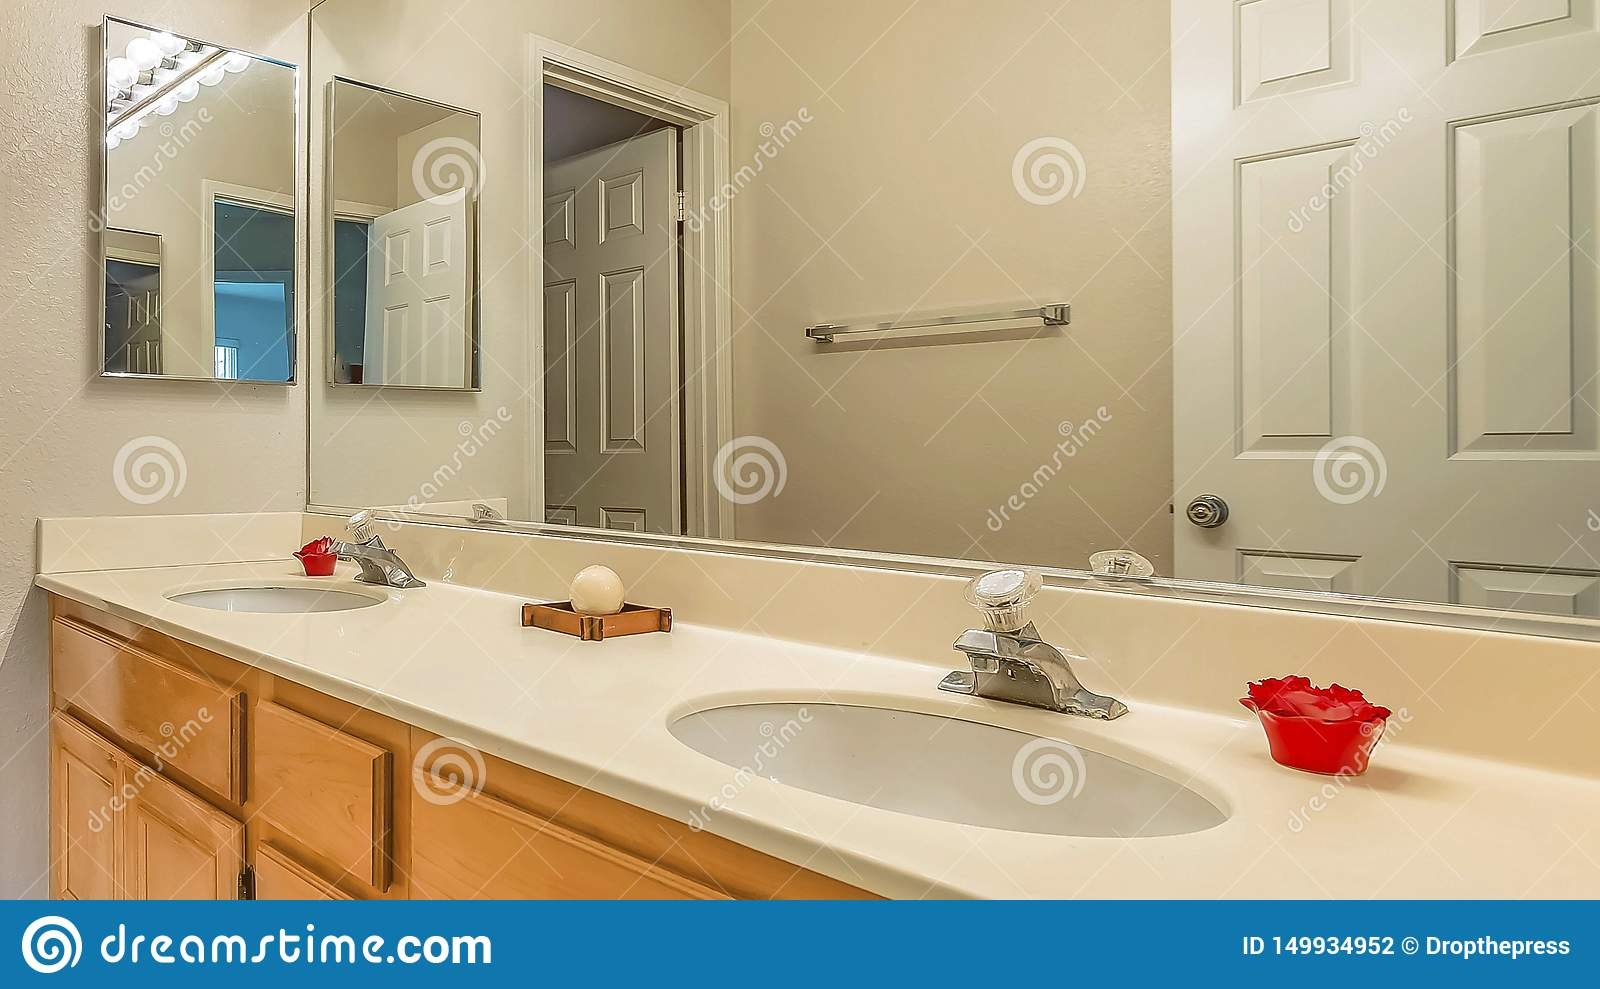 Panorama Vanity With Double Sink And Wood Cabinets Inside The Small Bathroom Of A Home Stock Photo Image Of Shower Residential 149934952